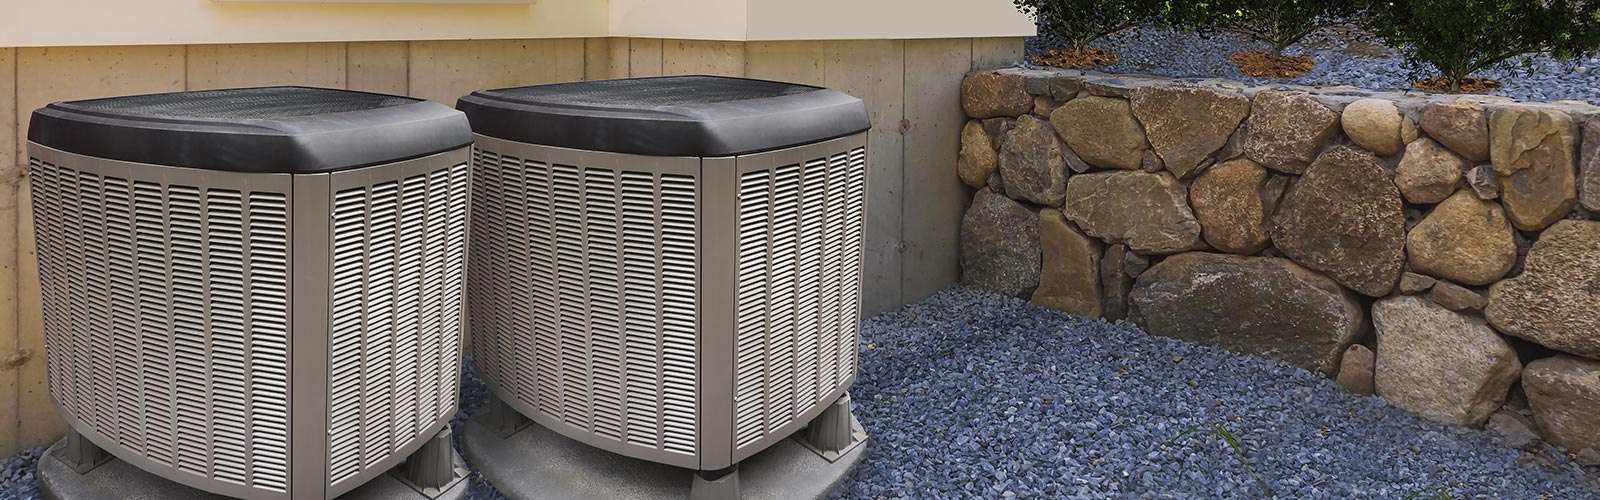 New AC Unit Installed in South Florida Home